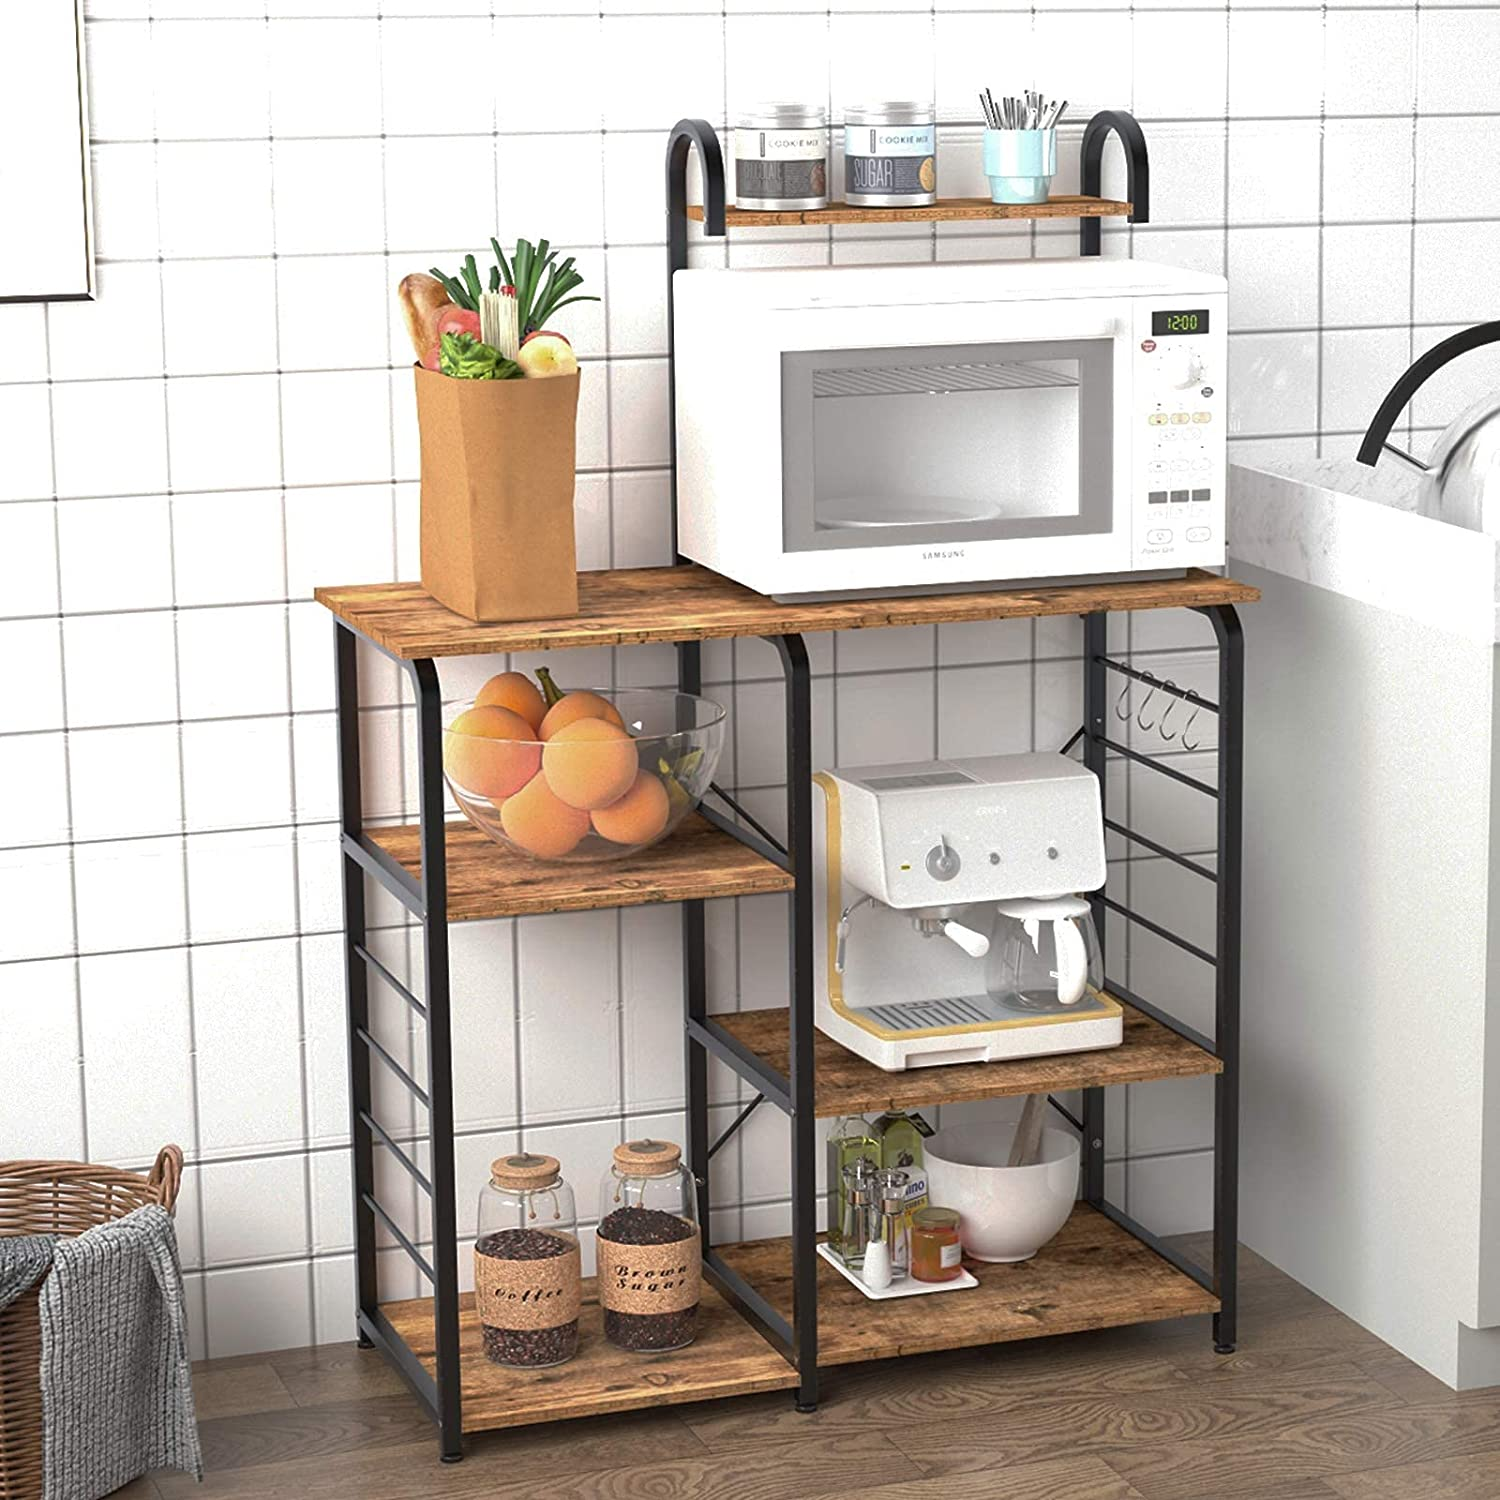 Phoenix Mall sogesfurniture Kitchen excellence Baker's Rack Stand Utility Oven Microwave